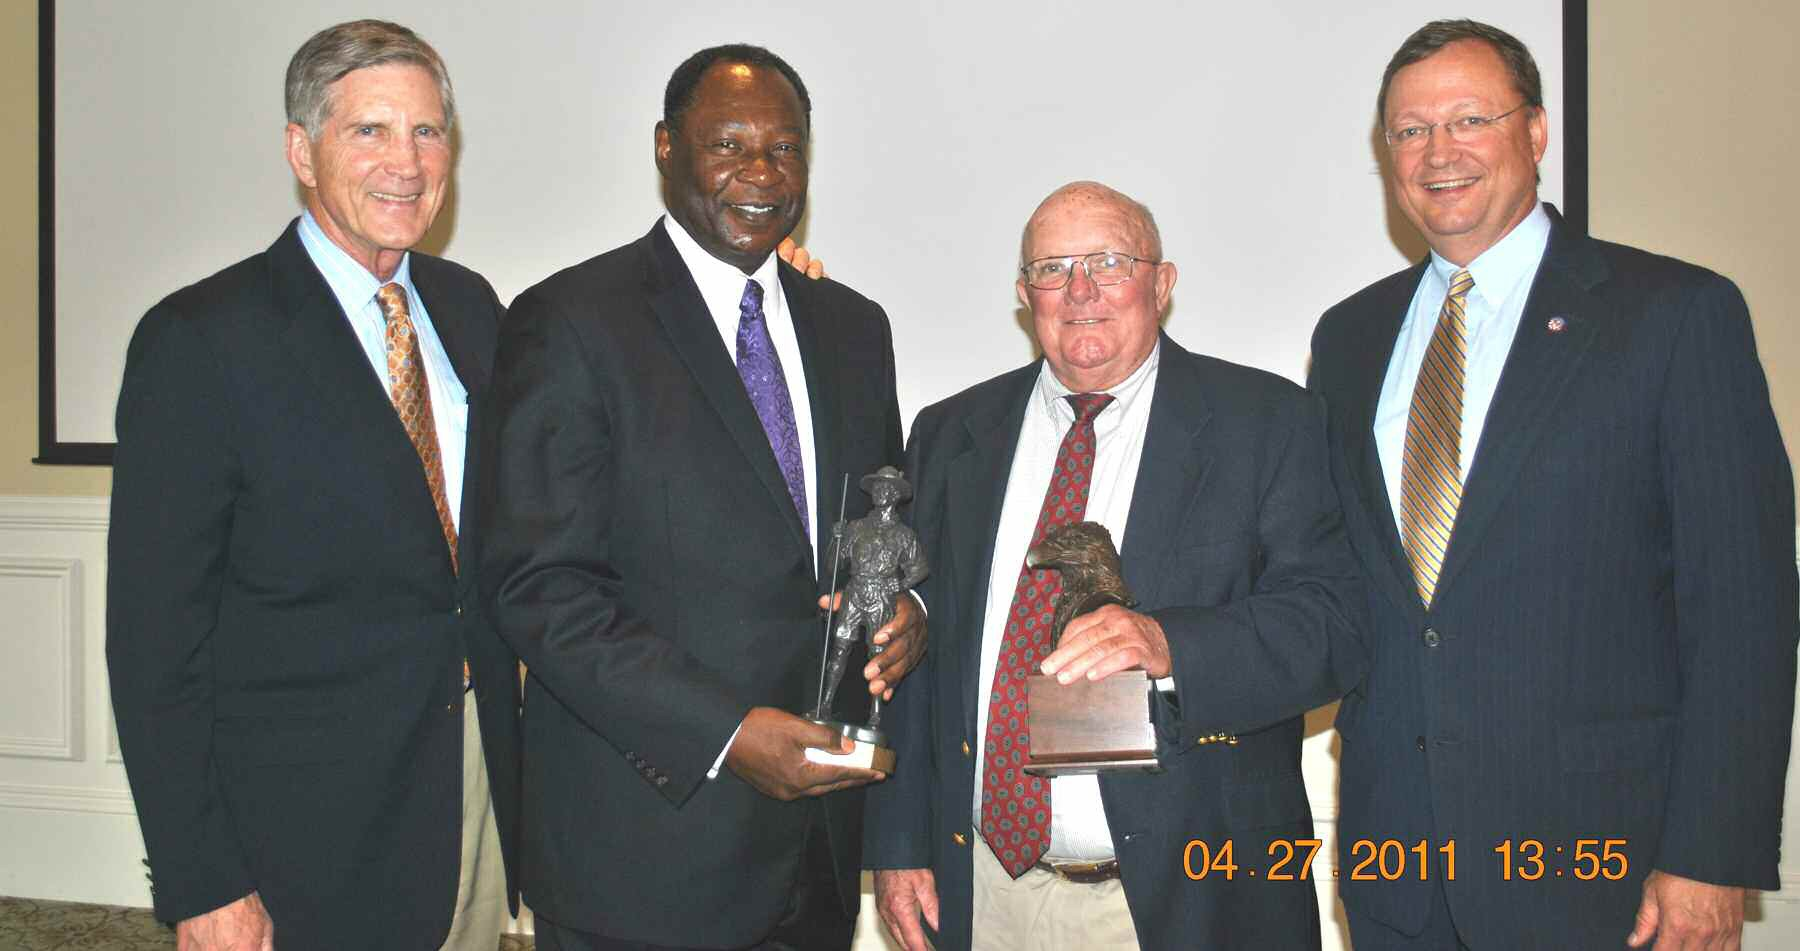 (L - R) Bill Curry, Robert James, Jerry Hogan and Pat O'Connor